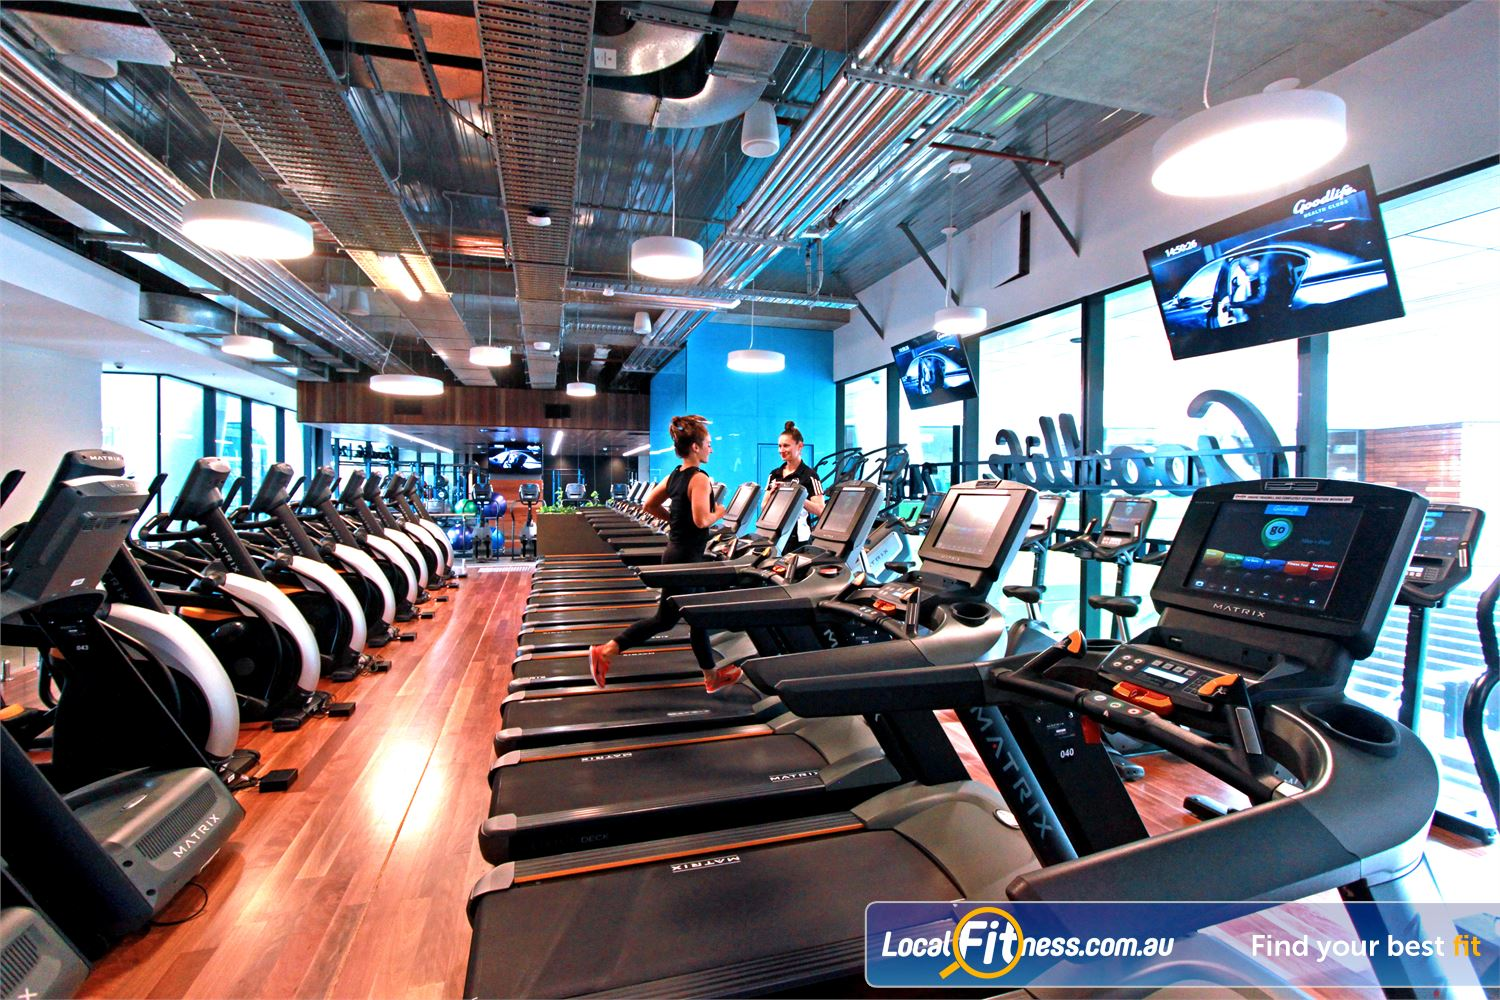 Goodlife Health Clubs Near South Melbourne The cardio zone is a great place to burn those calories in Docklands.